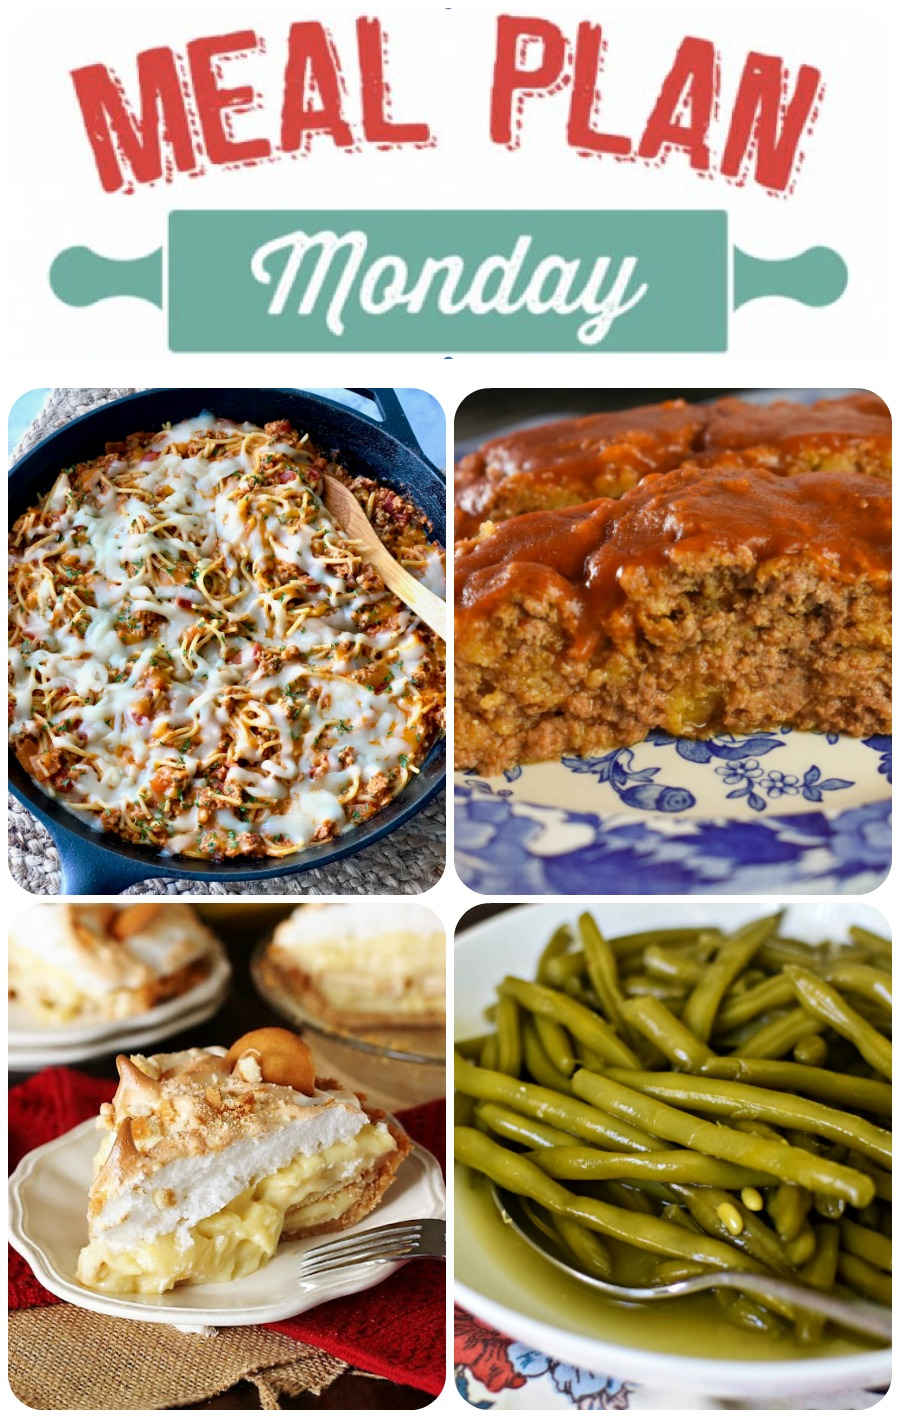 meal plan Monday collage with meatloaf, green beans, pasta, and pie